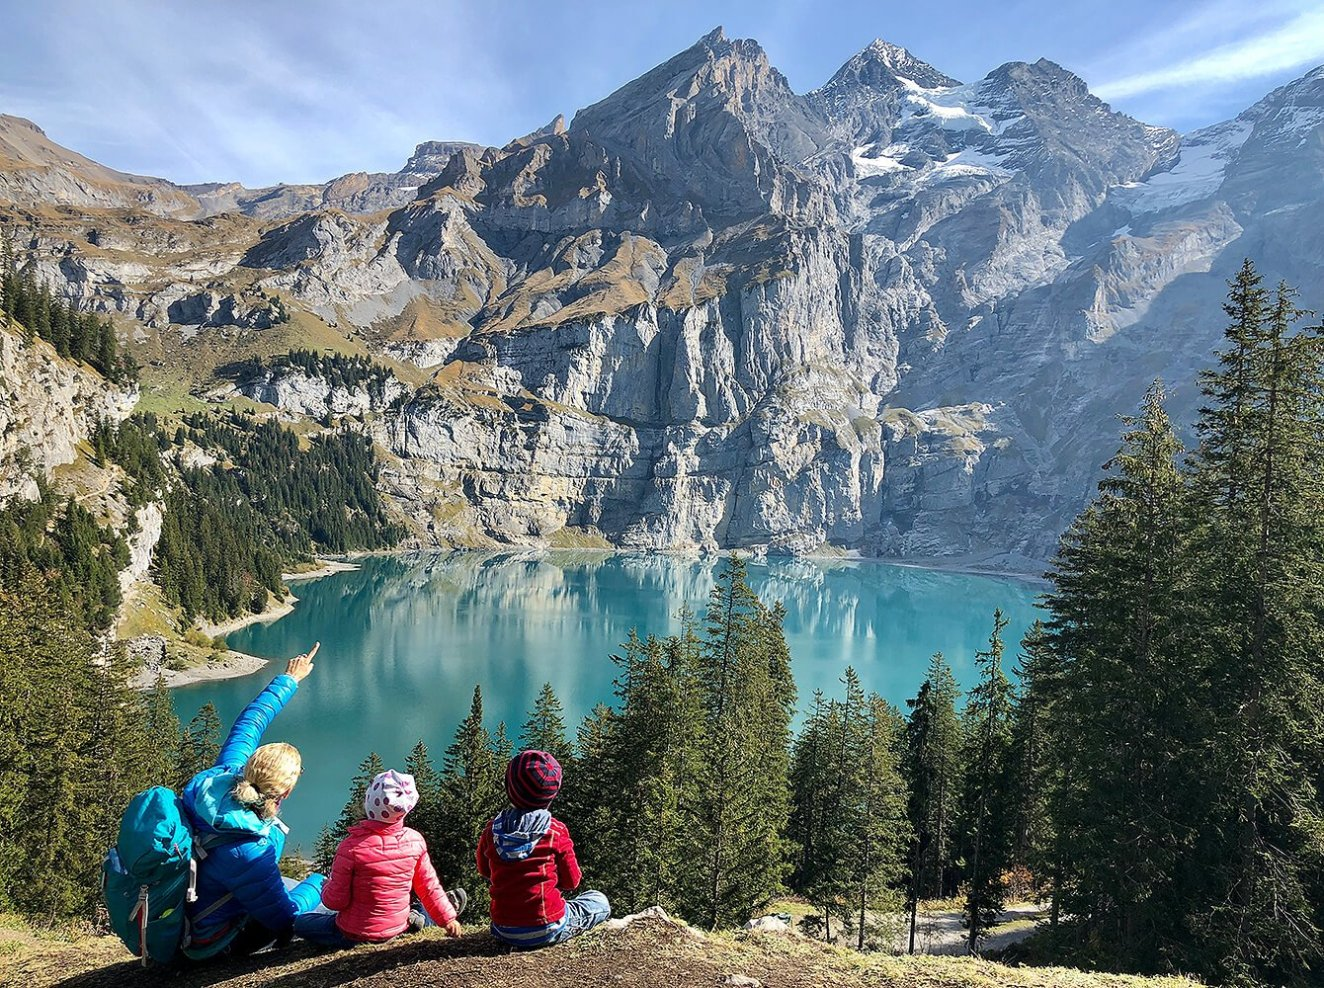 Stunning view from the Oeschinensee in